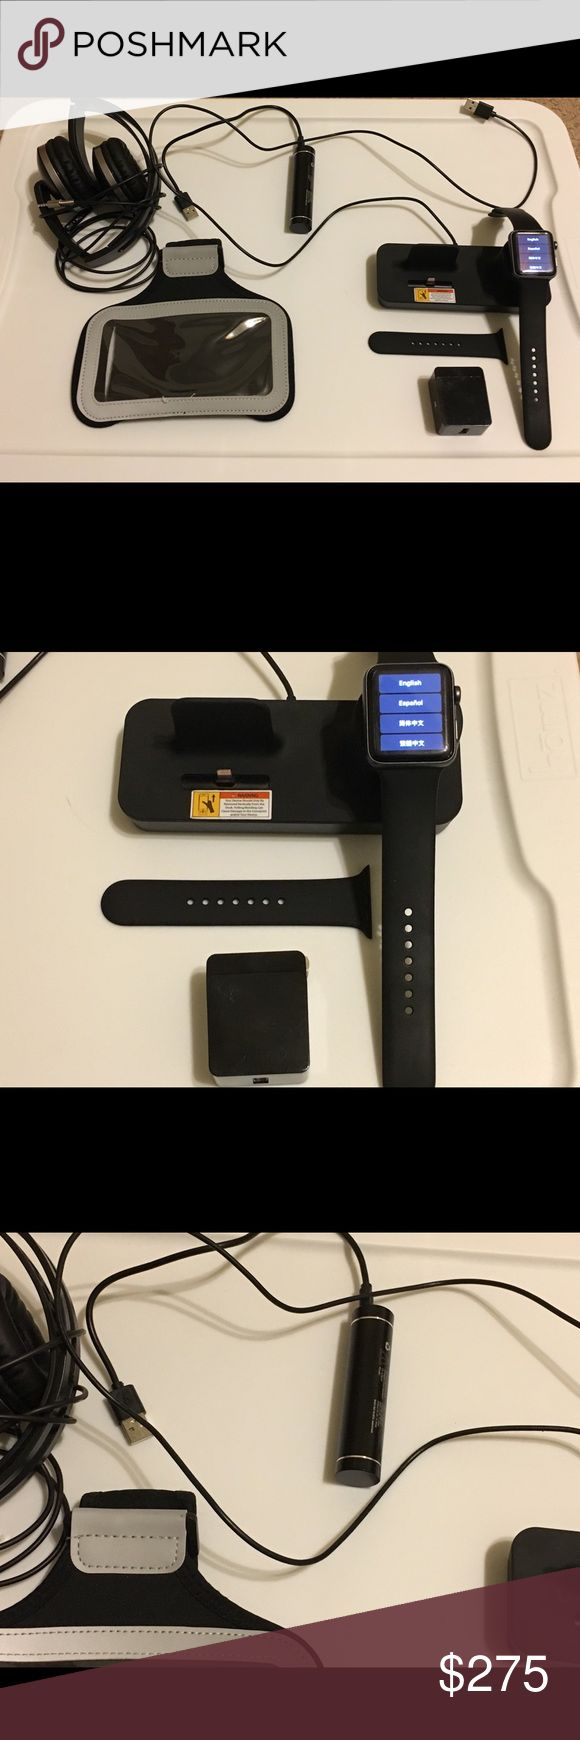 Apple Watch Series 2 42mm Aluminum Case Apple Watch Series 2 42mm Aluminum Case Black Sport Band - (MP062LL/A) Includes charging deck, portable charger, extra band, headphones and an armband case. Apple Accessories Watches